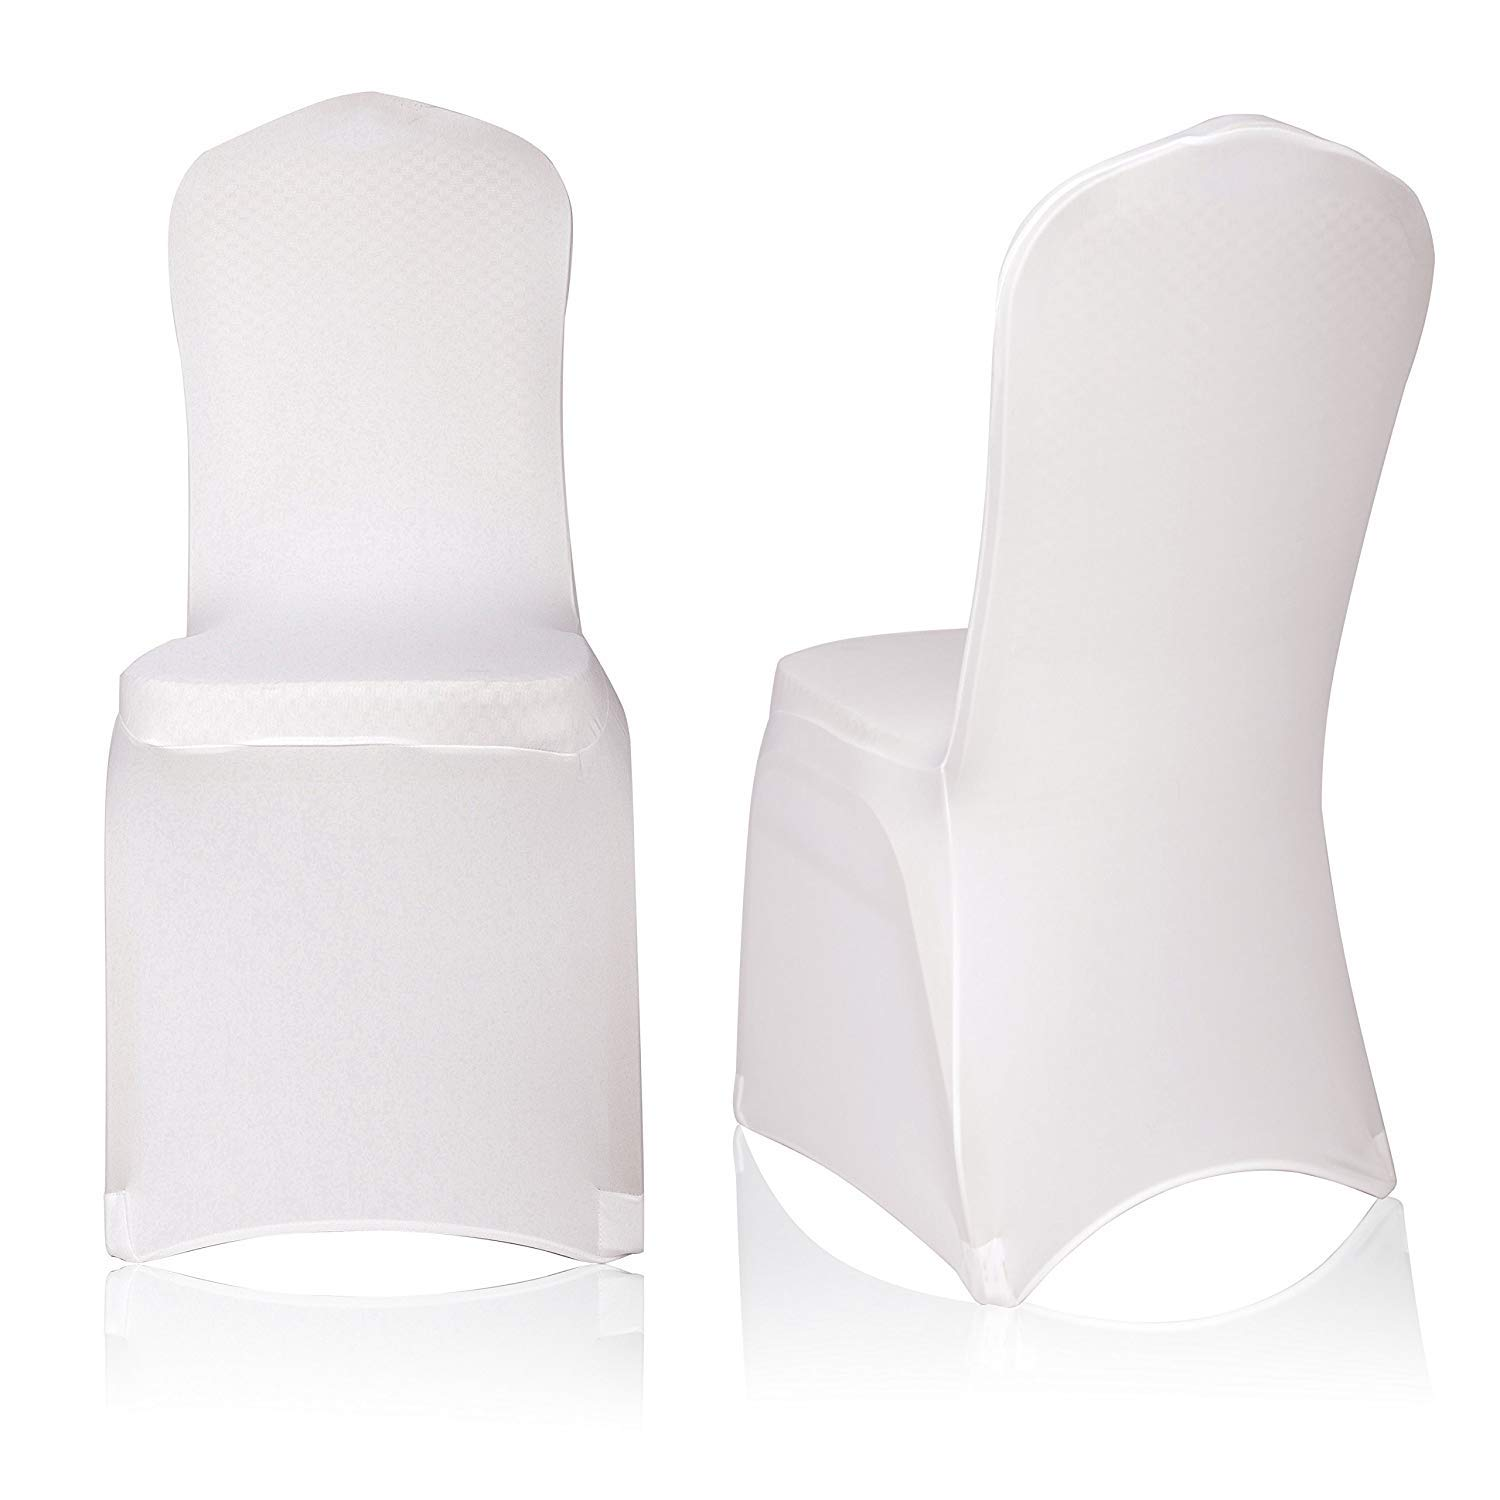 EMART 50pcs Polyester Spandex Ivory Chair Covers Polyester Spandex, Dining Chair Slipcovers for Banquet Wedding Party